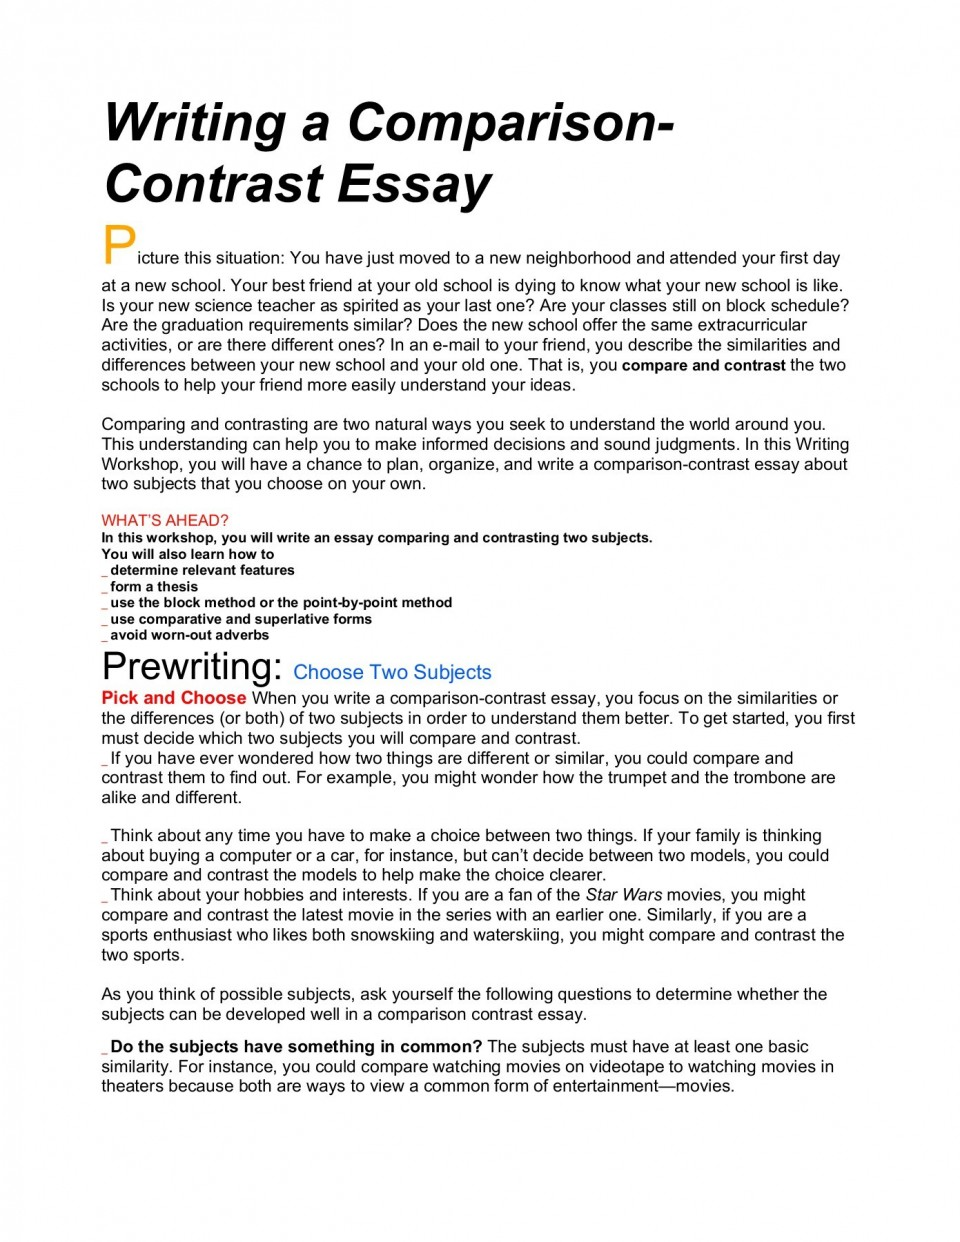 010 How To Write Compare And Contrast Essay Outstanding A On Two Poems An Introduction Conclusion For Middle School 960